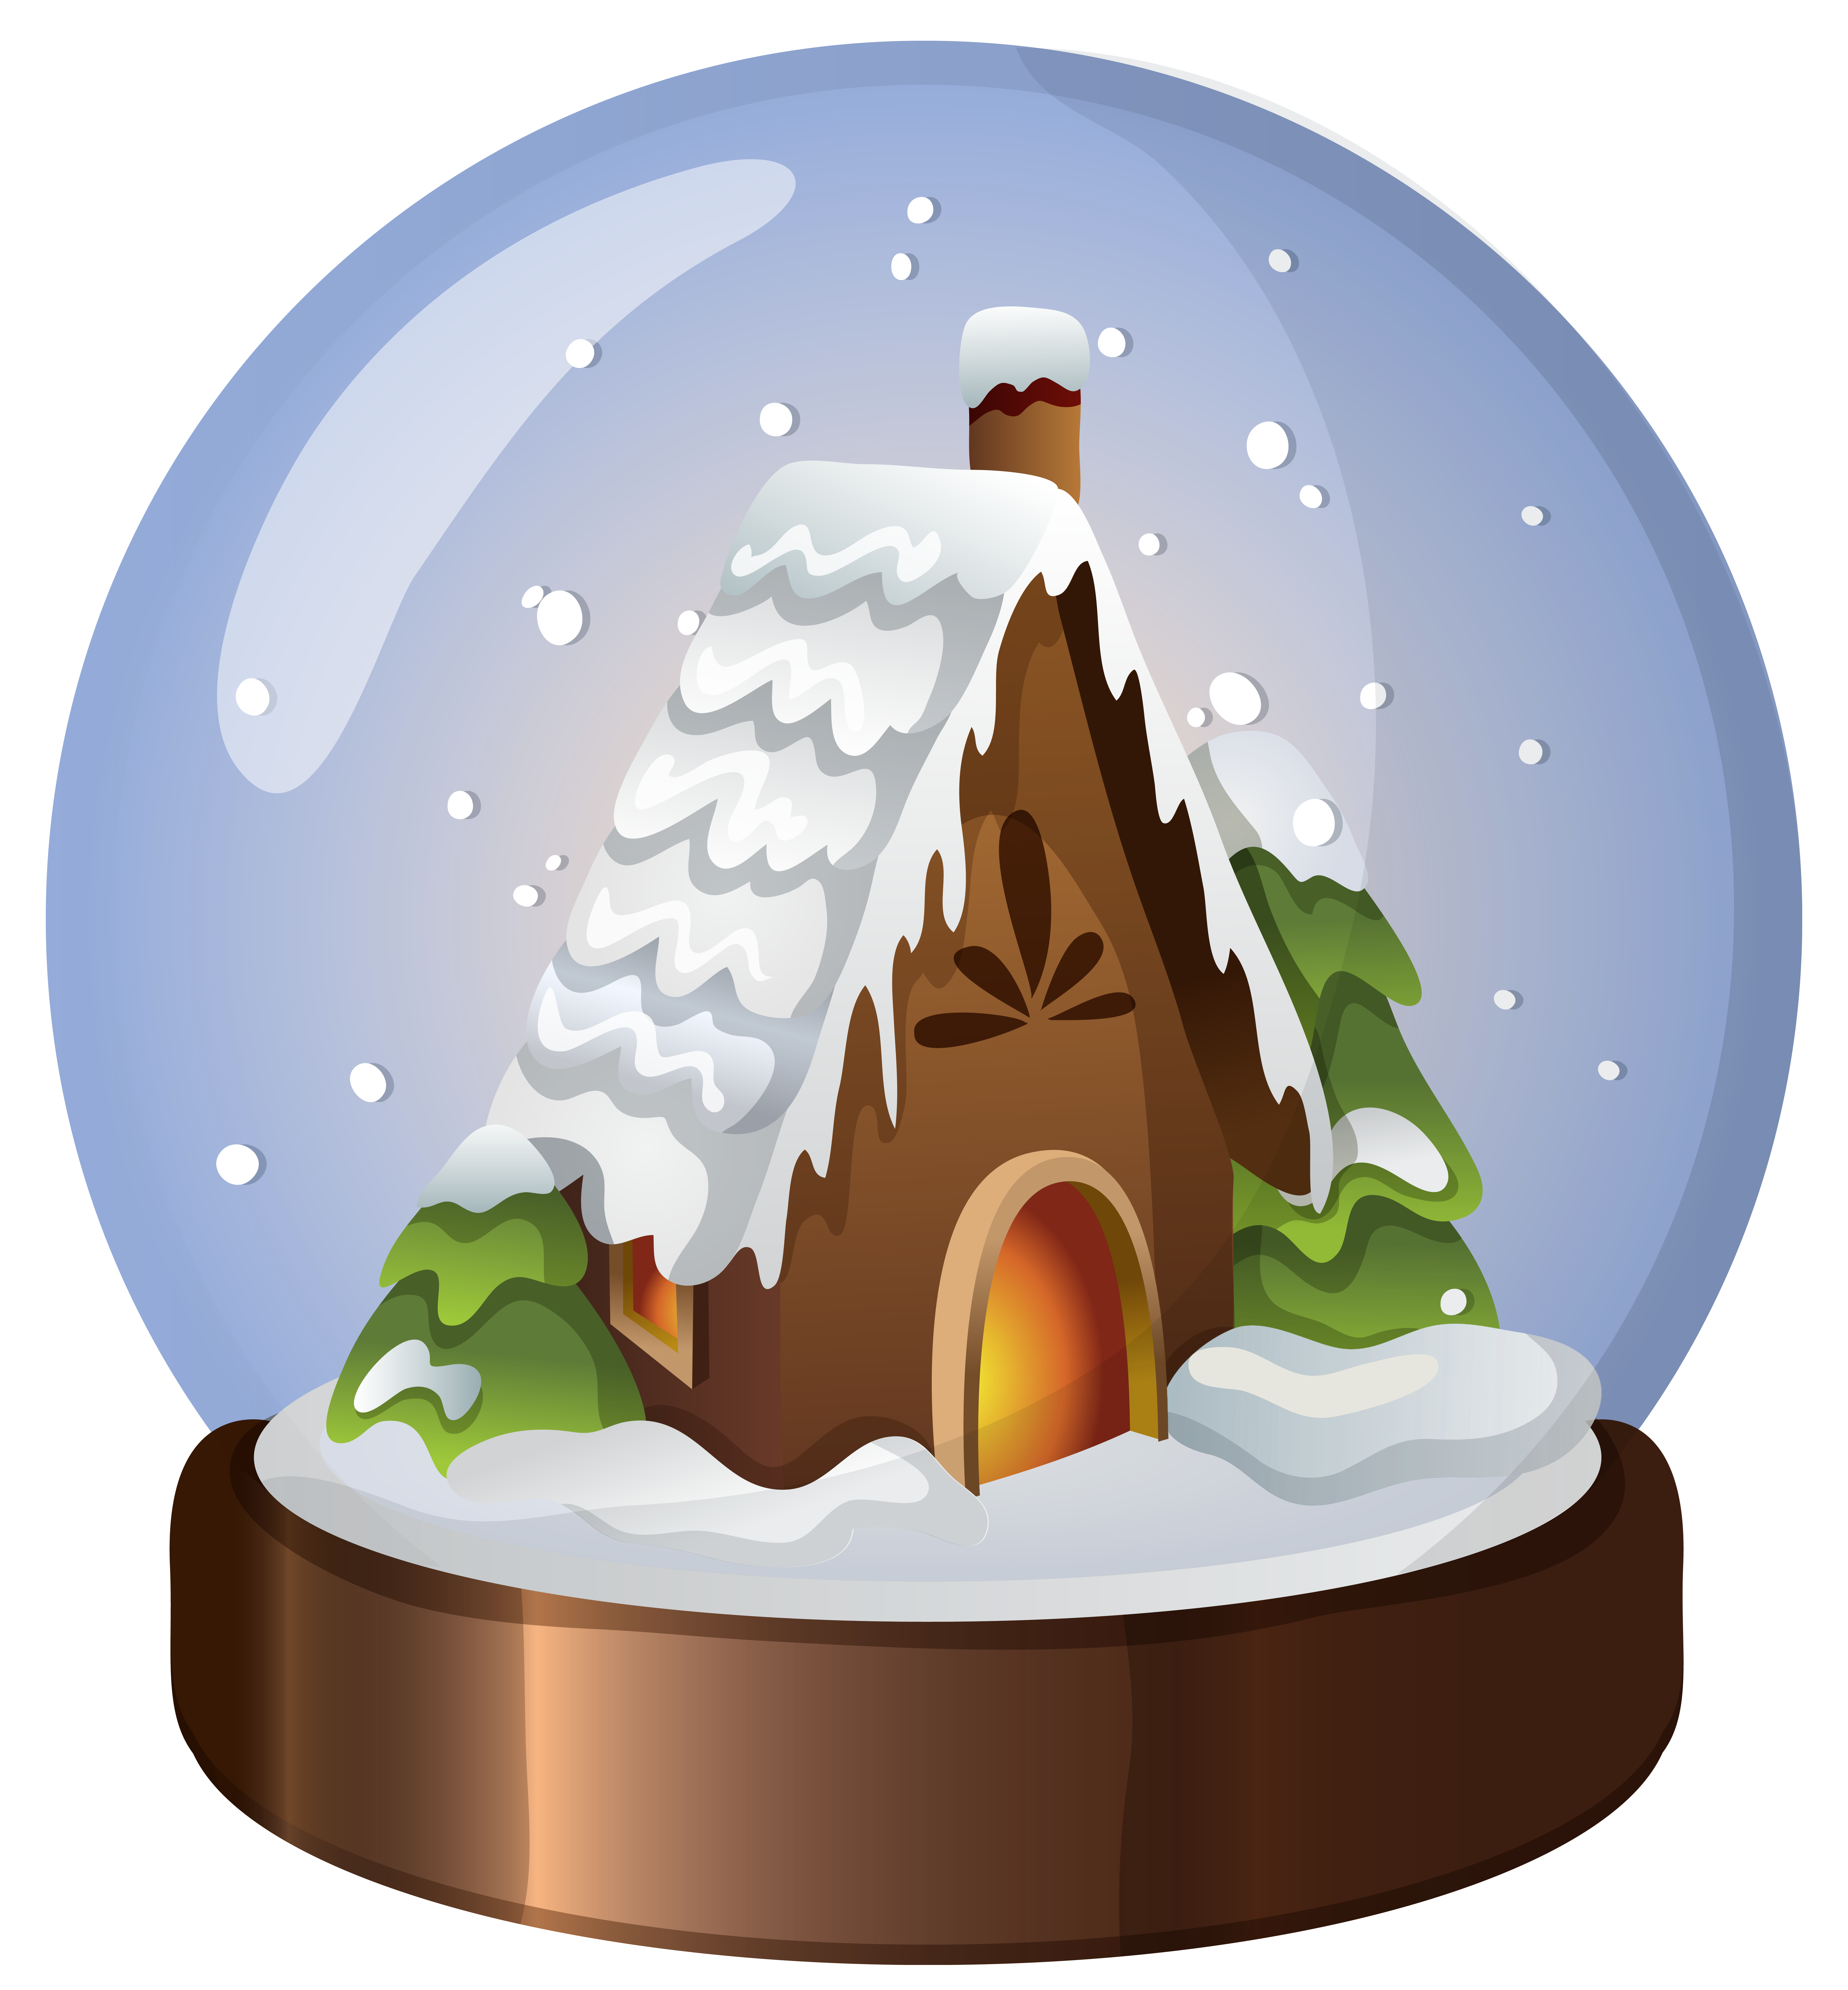 Snow house clipart clipart freeuse stock Christmas House Snow Globe PNG Clip Art Image | Gallery ... clipart freeuse stock